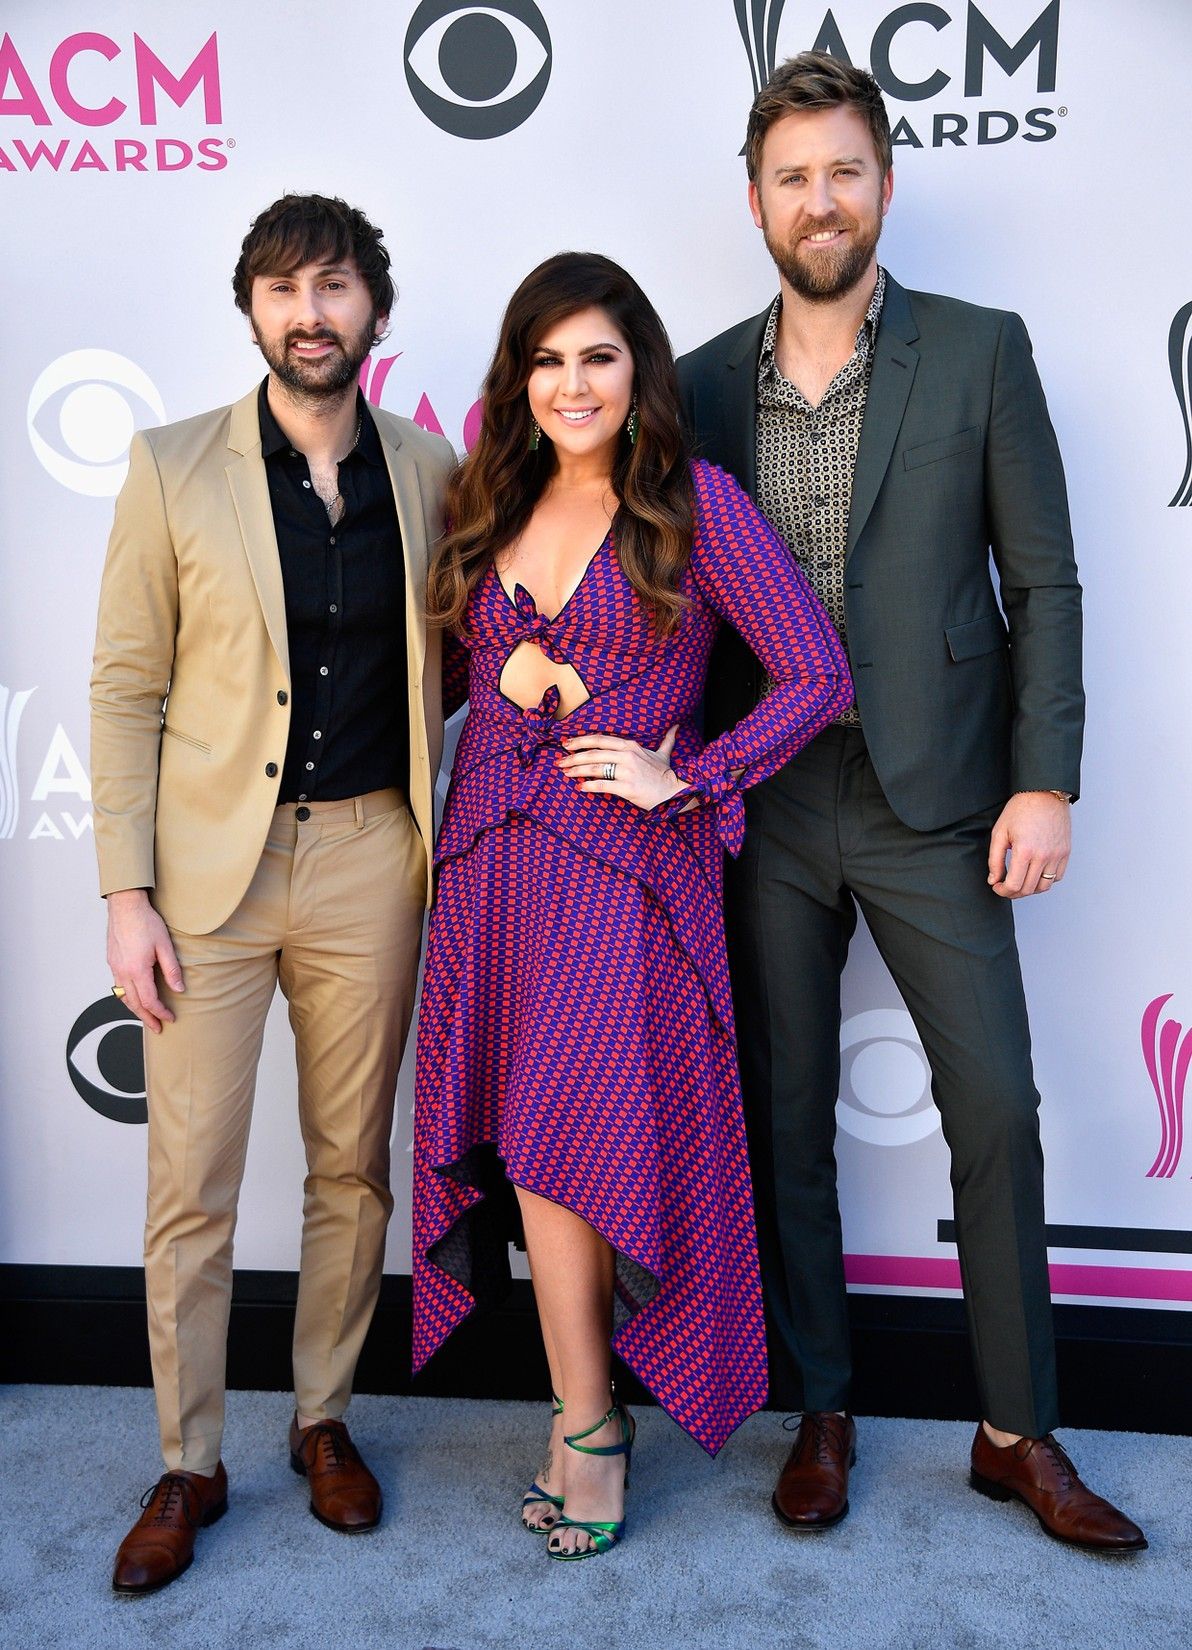 Dave Haywood, Hillary Scott, and Charles Kelley of Lady Antebellum attend the 52nd Academy Of Country Music Awards at Toshiba Plaza on April 2, 2017 in Las Vegas.